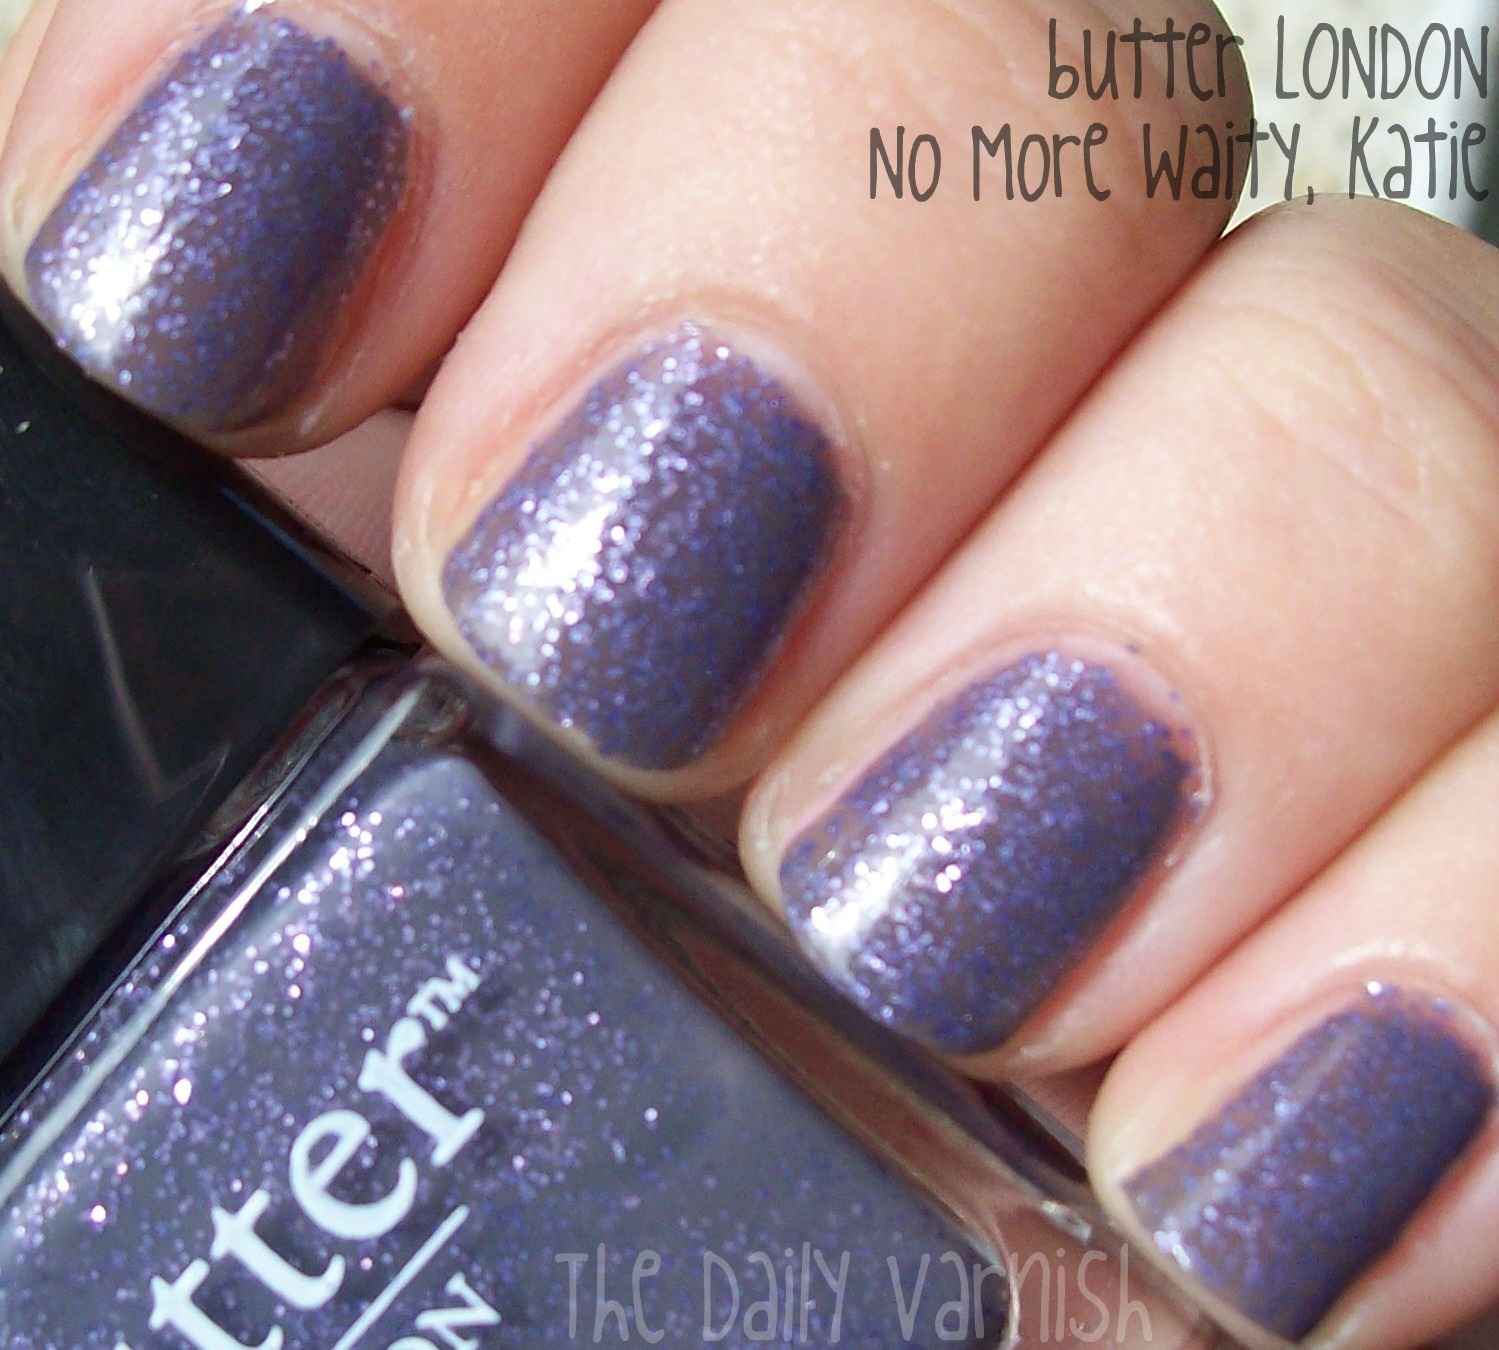 butter LONDON – No More Waity, Katie. – The Daily Varnish